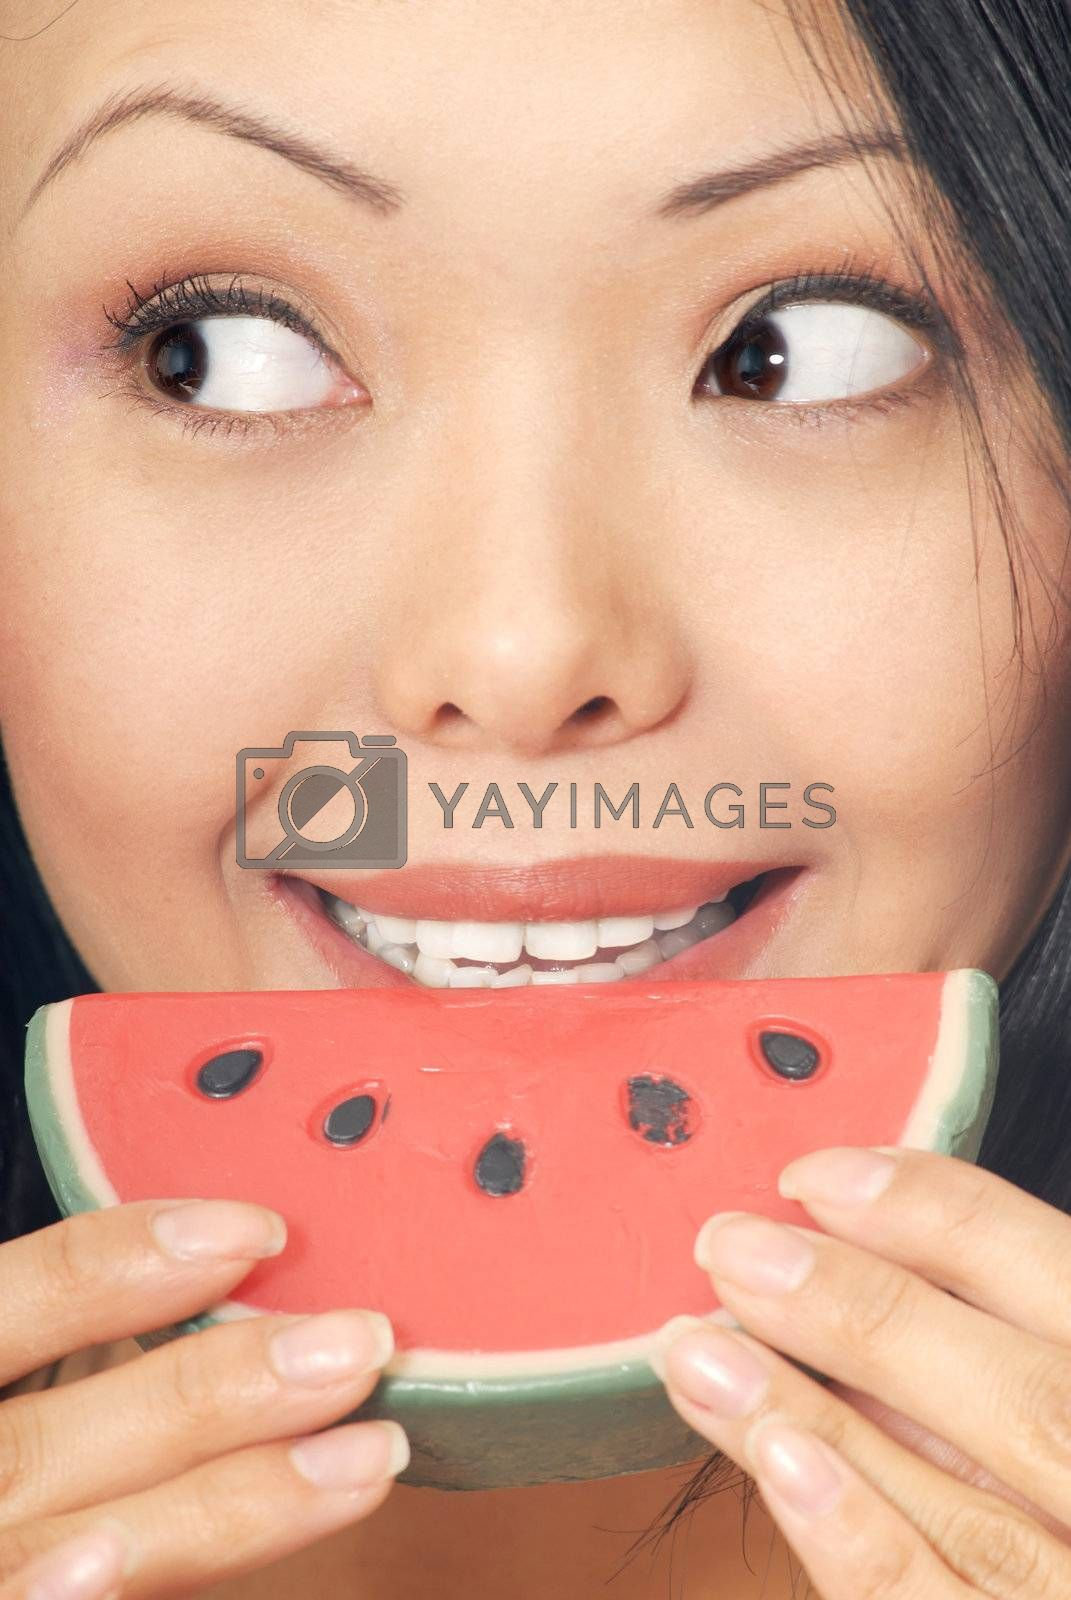 Smiling woman with melon looking to the sideward